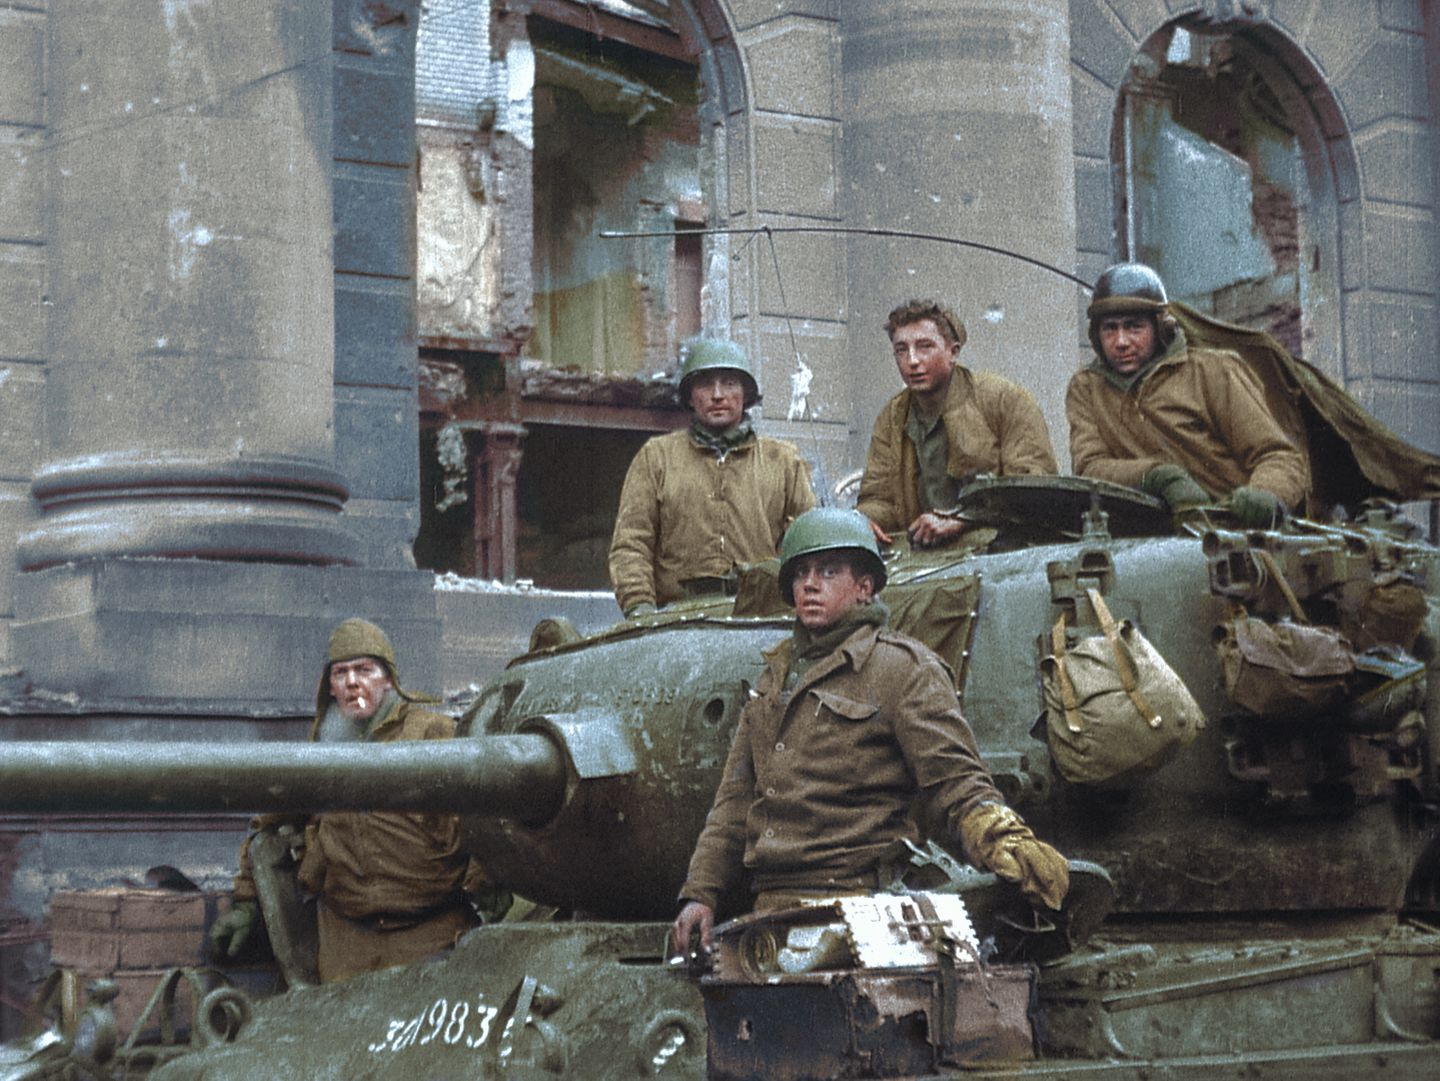 Clarence Smoyer, top center, and his crewmates were photographed with their Pershing tank on March 6, 1945, in Cologne, Germany. This image, from an Army newsreel, was taken just after they had knocked out a German Panther tank.